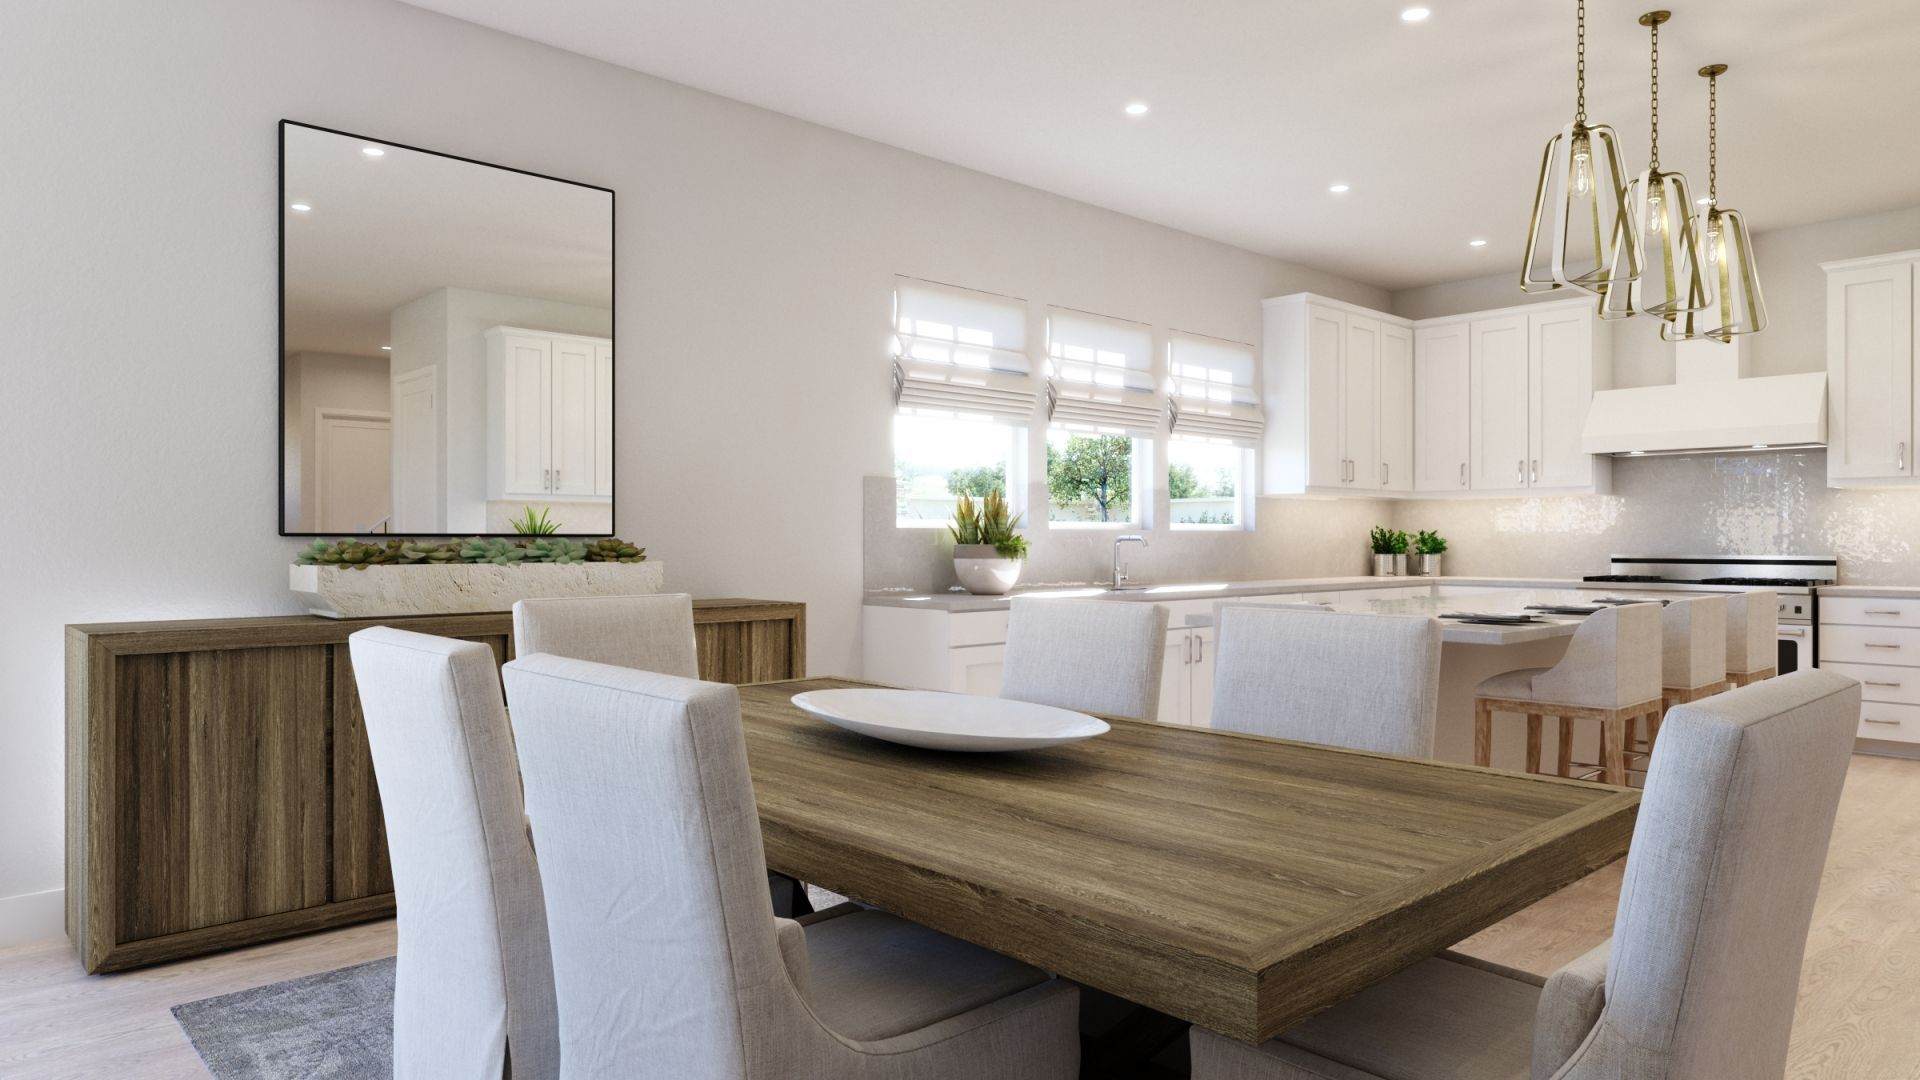 Kitchen featured in the 6A By SummerHill Homes in San Jose, CA